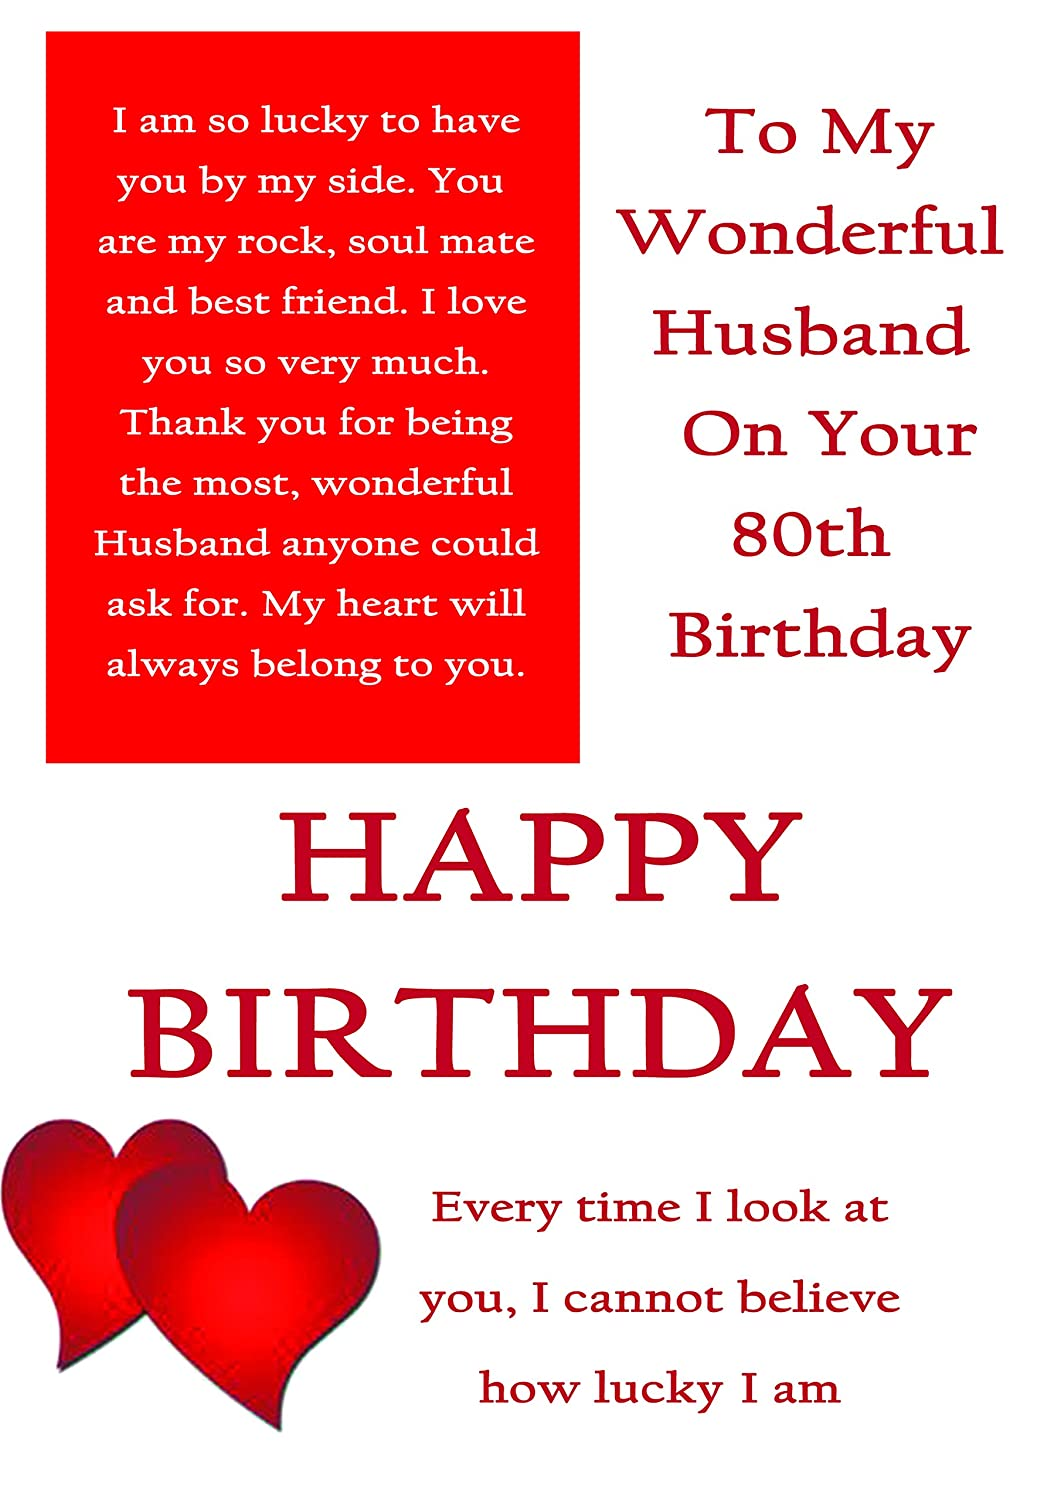 For a Wonderful Husband on Your 80th birthday card